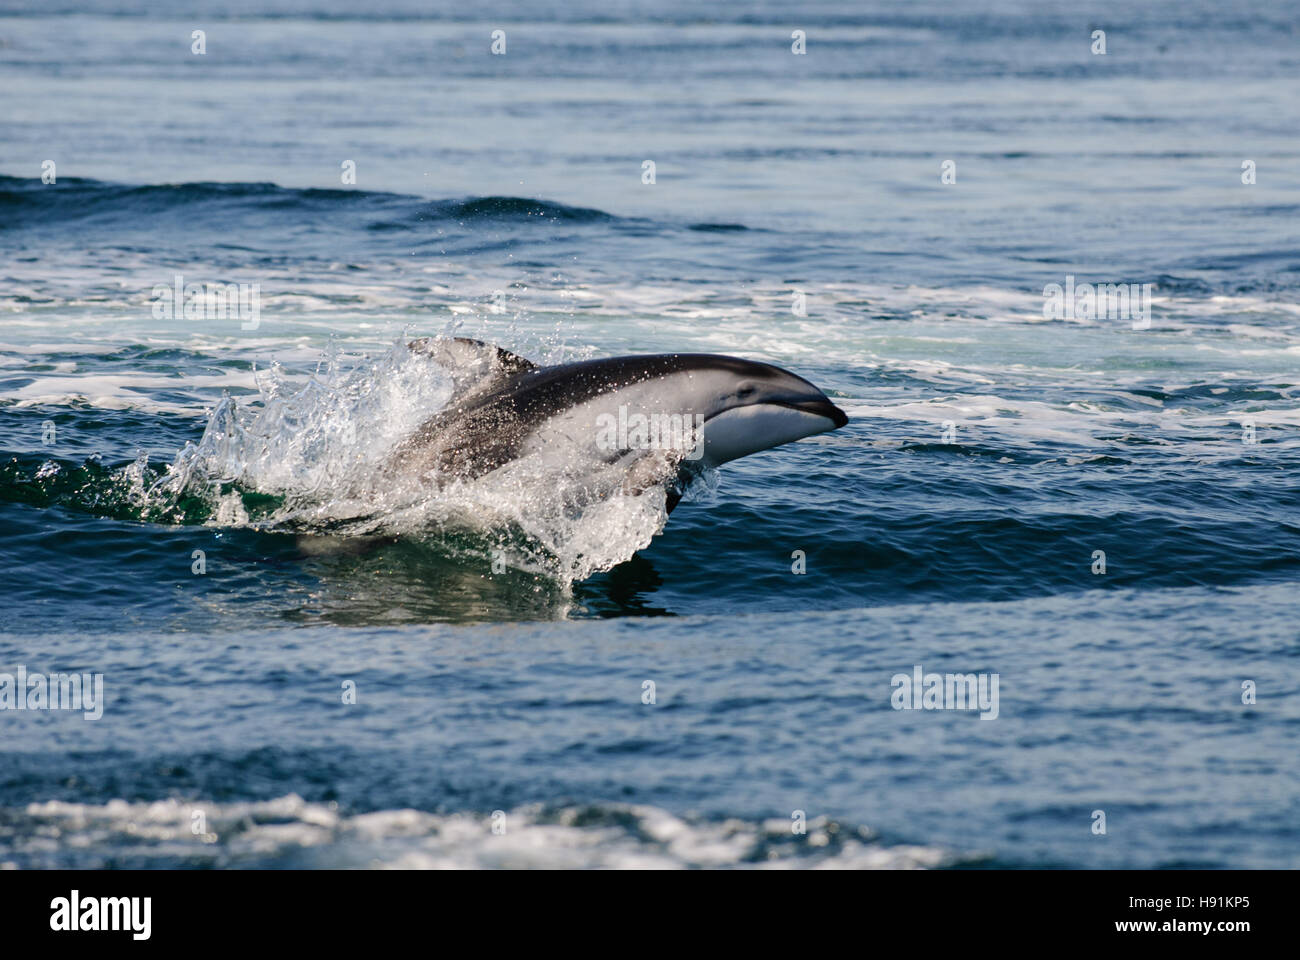 Jumping Pacific Whitesided Dolphin, Discovery Passage, Campbell River, Vancouver Island, Canada - Stock Image